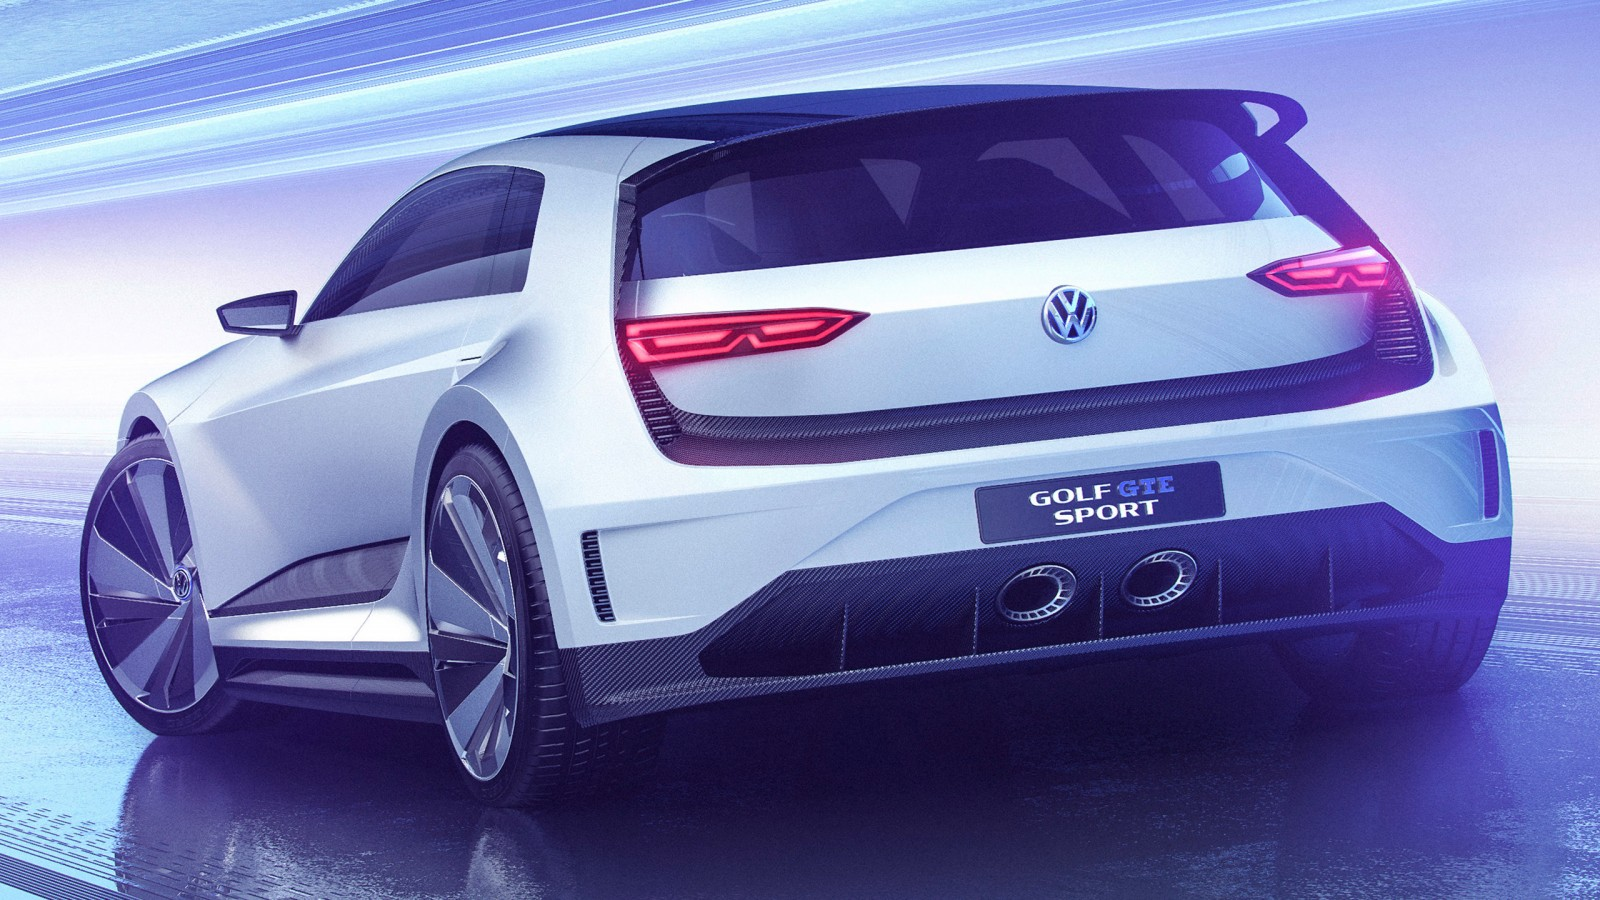 2015 Volkswagen Golf Gte Sport Concept 3 Wallpaper Hd